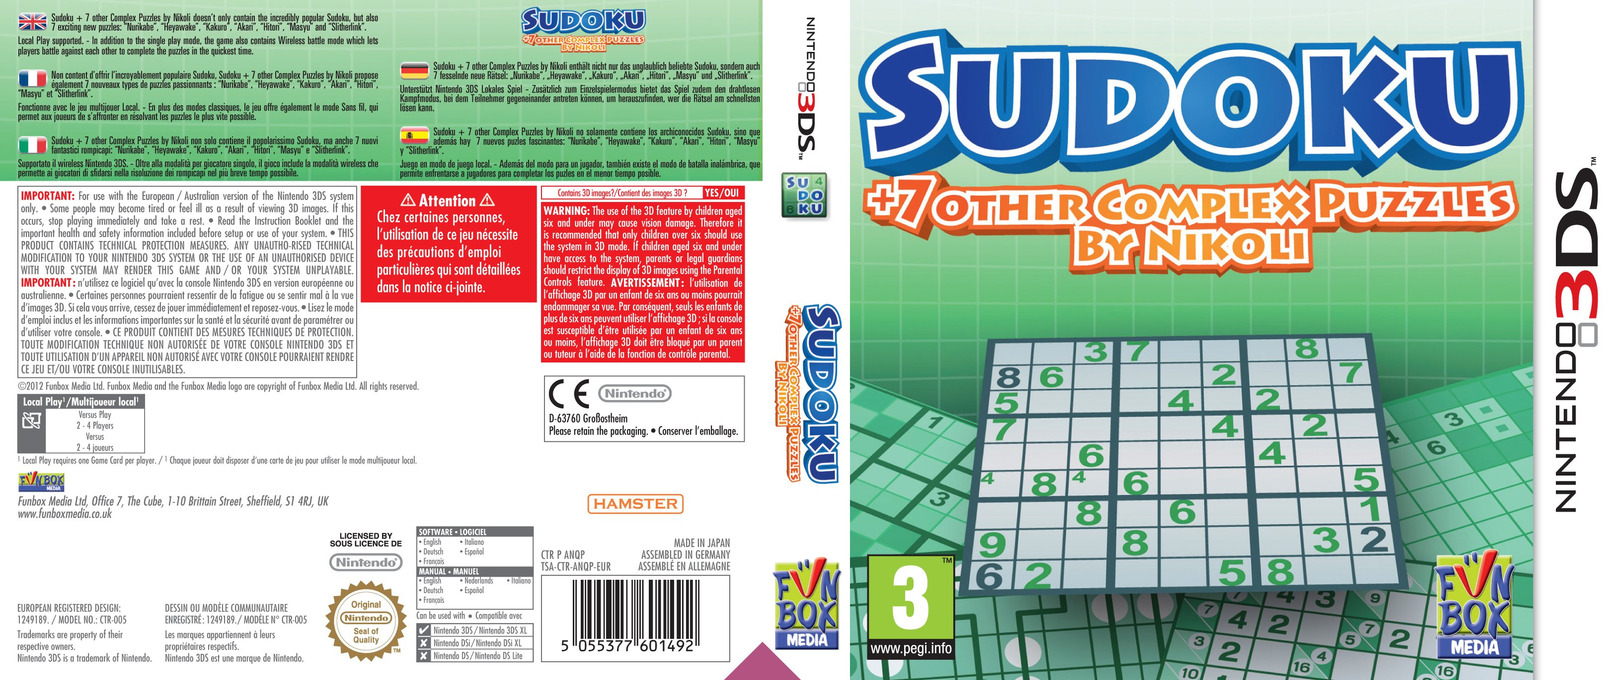 Sudoku + 7 Other Complex Puzzles by Nikoli 3DS coverfullHQ (ANQP)